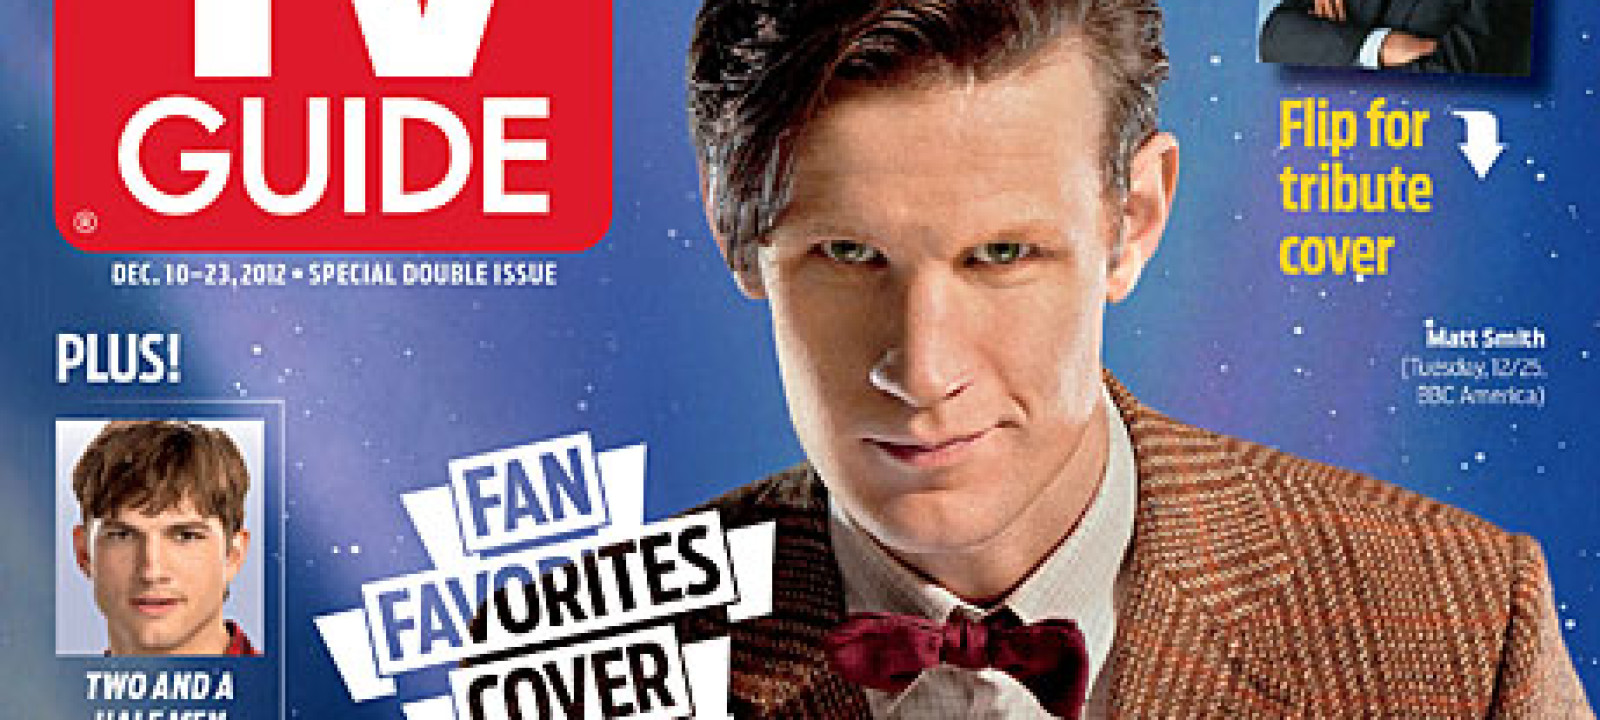 Doctor Who on the cover of TV Guide